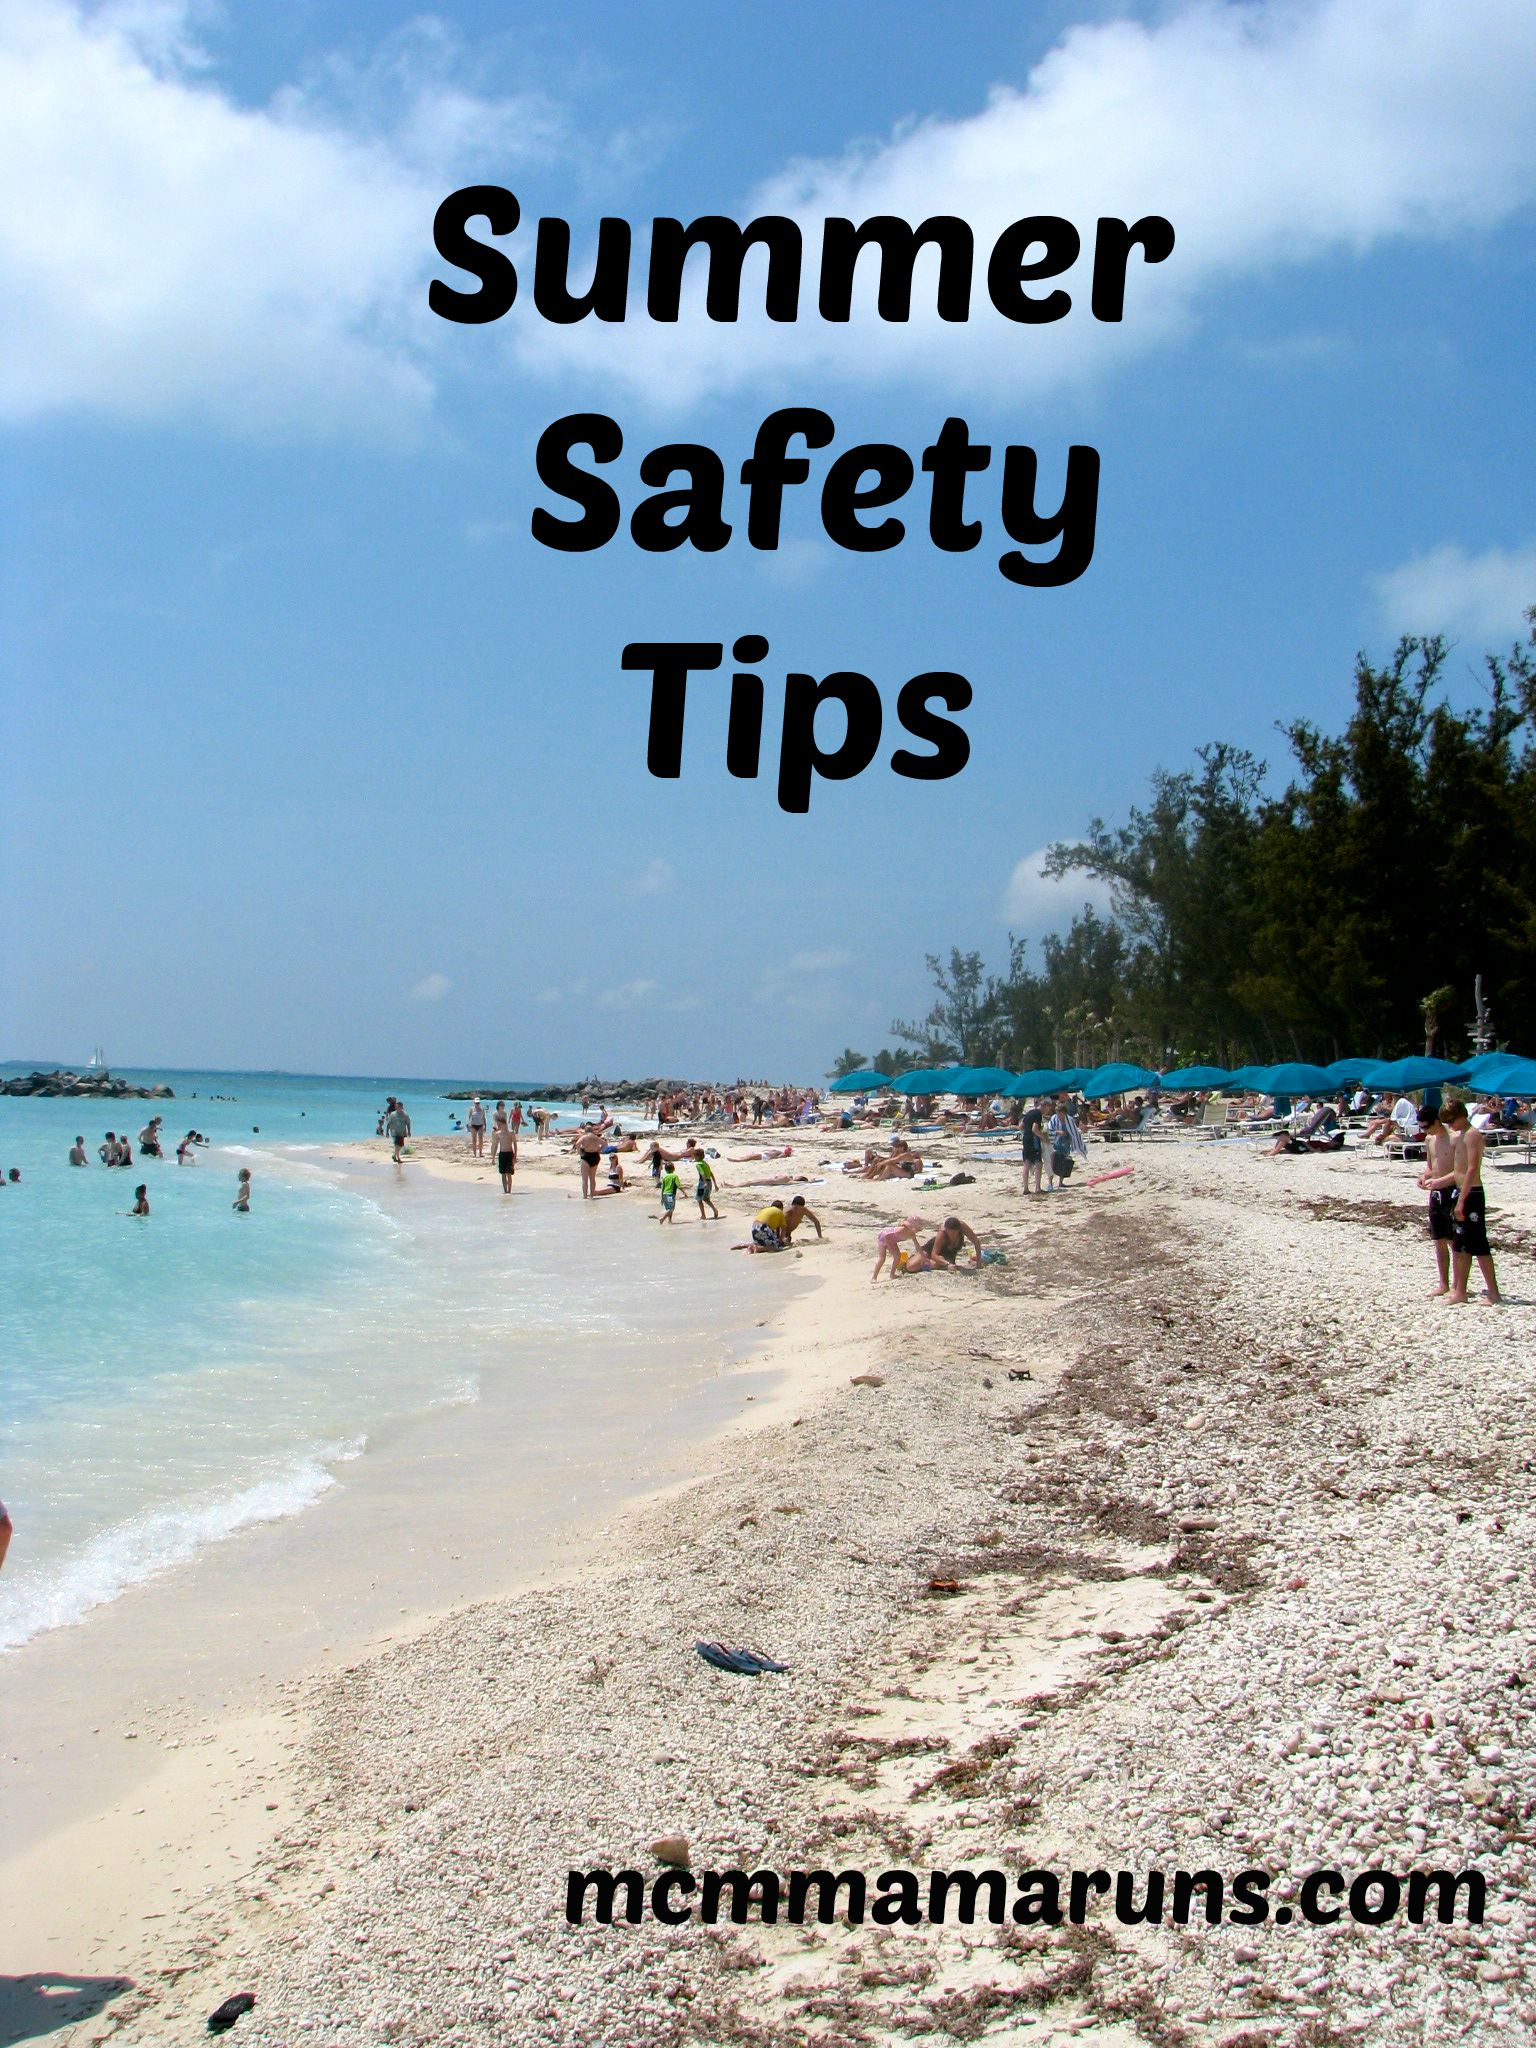 Aflac summer safety